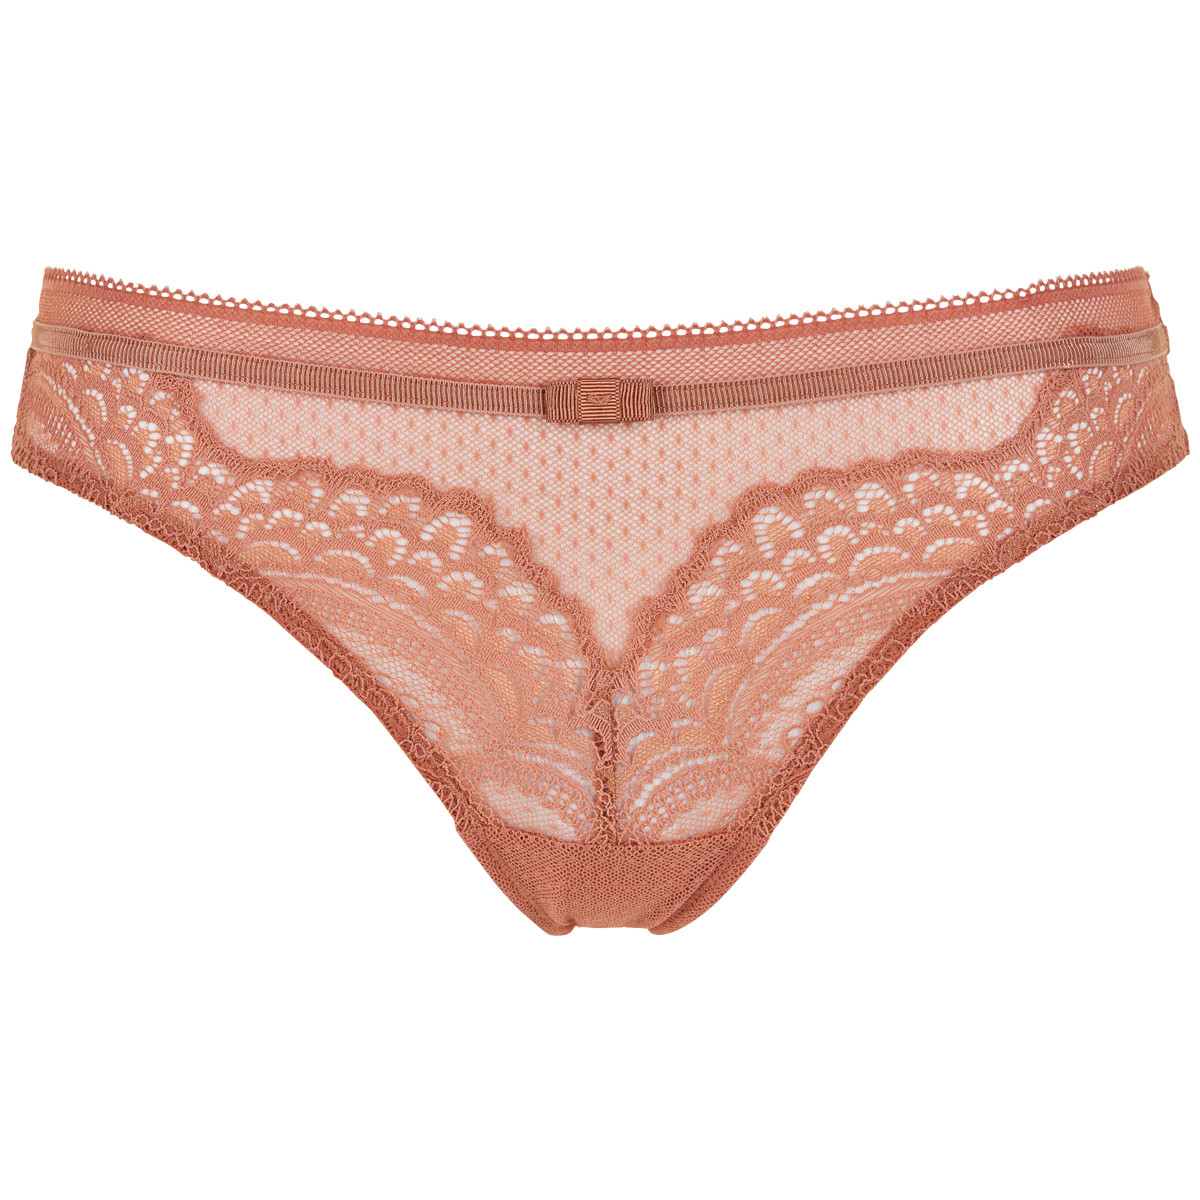 TRIUMPH BEAUTY-FULL DARLING STRING 10156818 7014